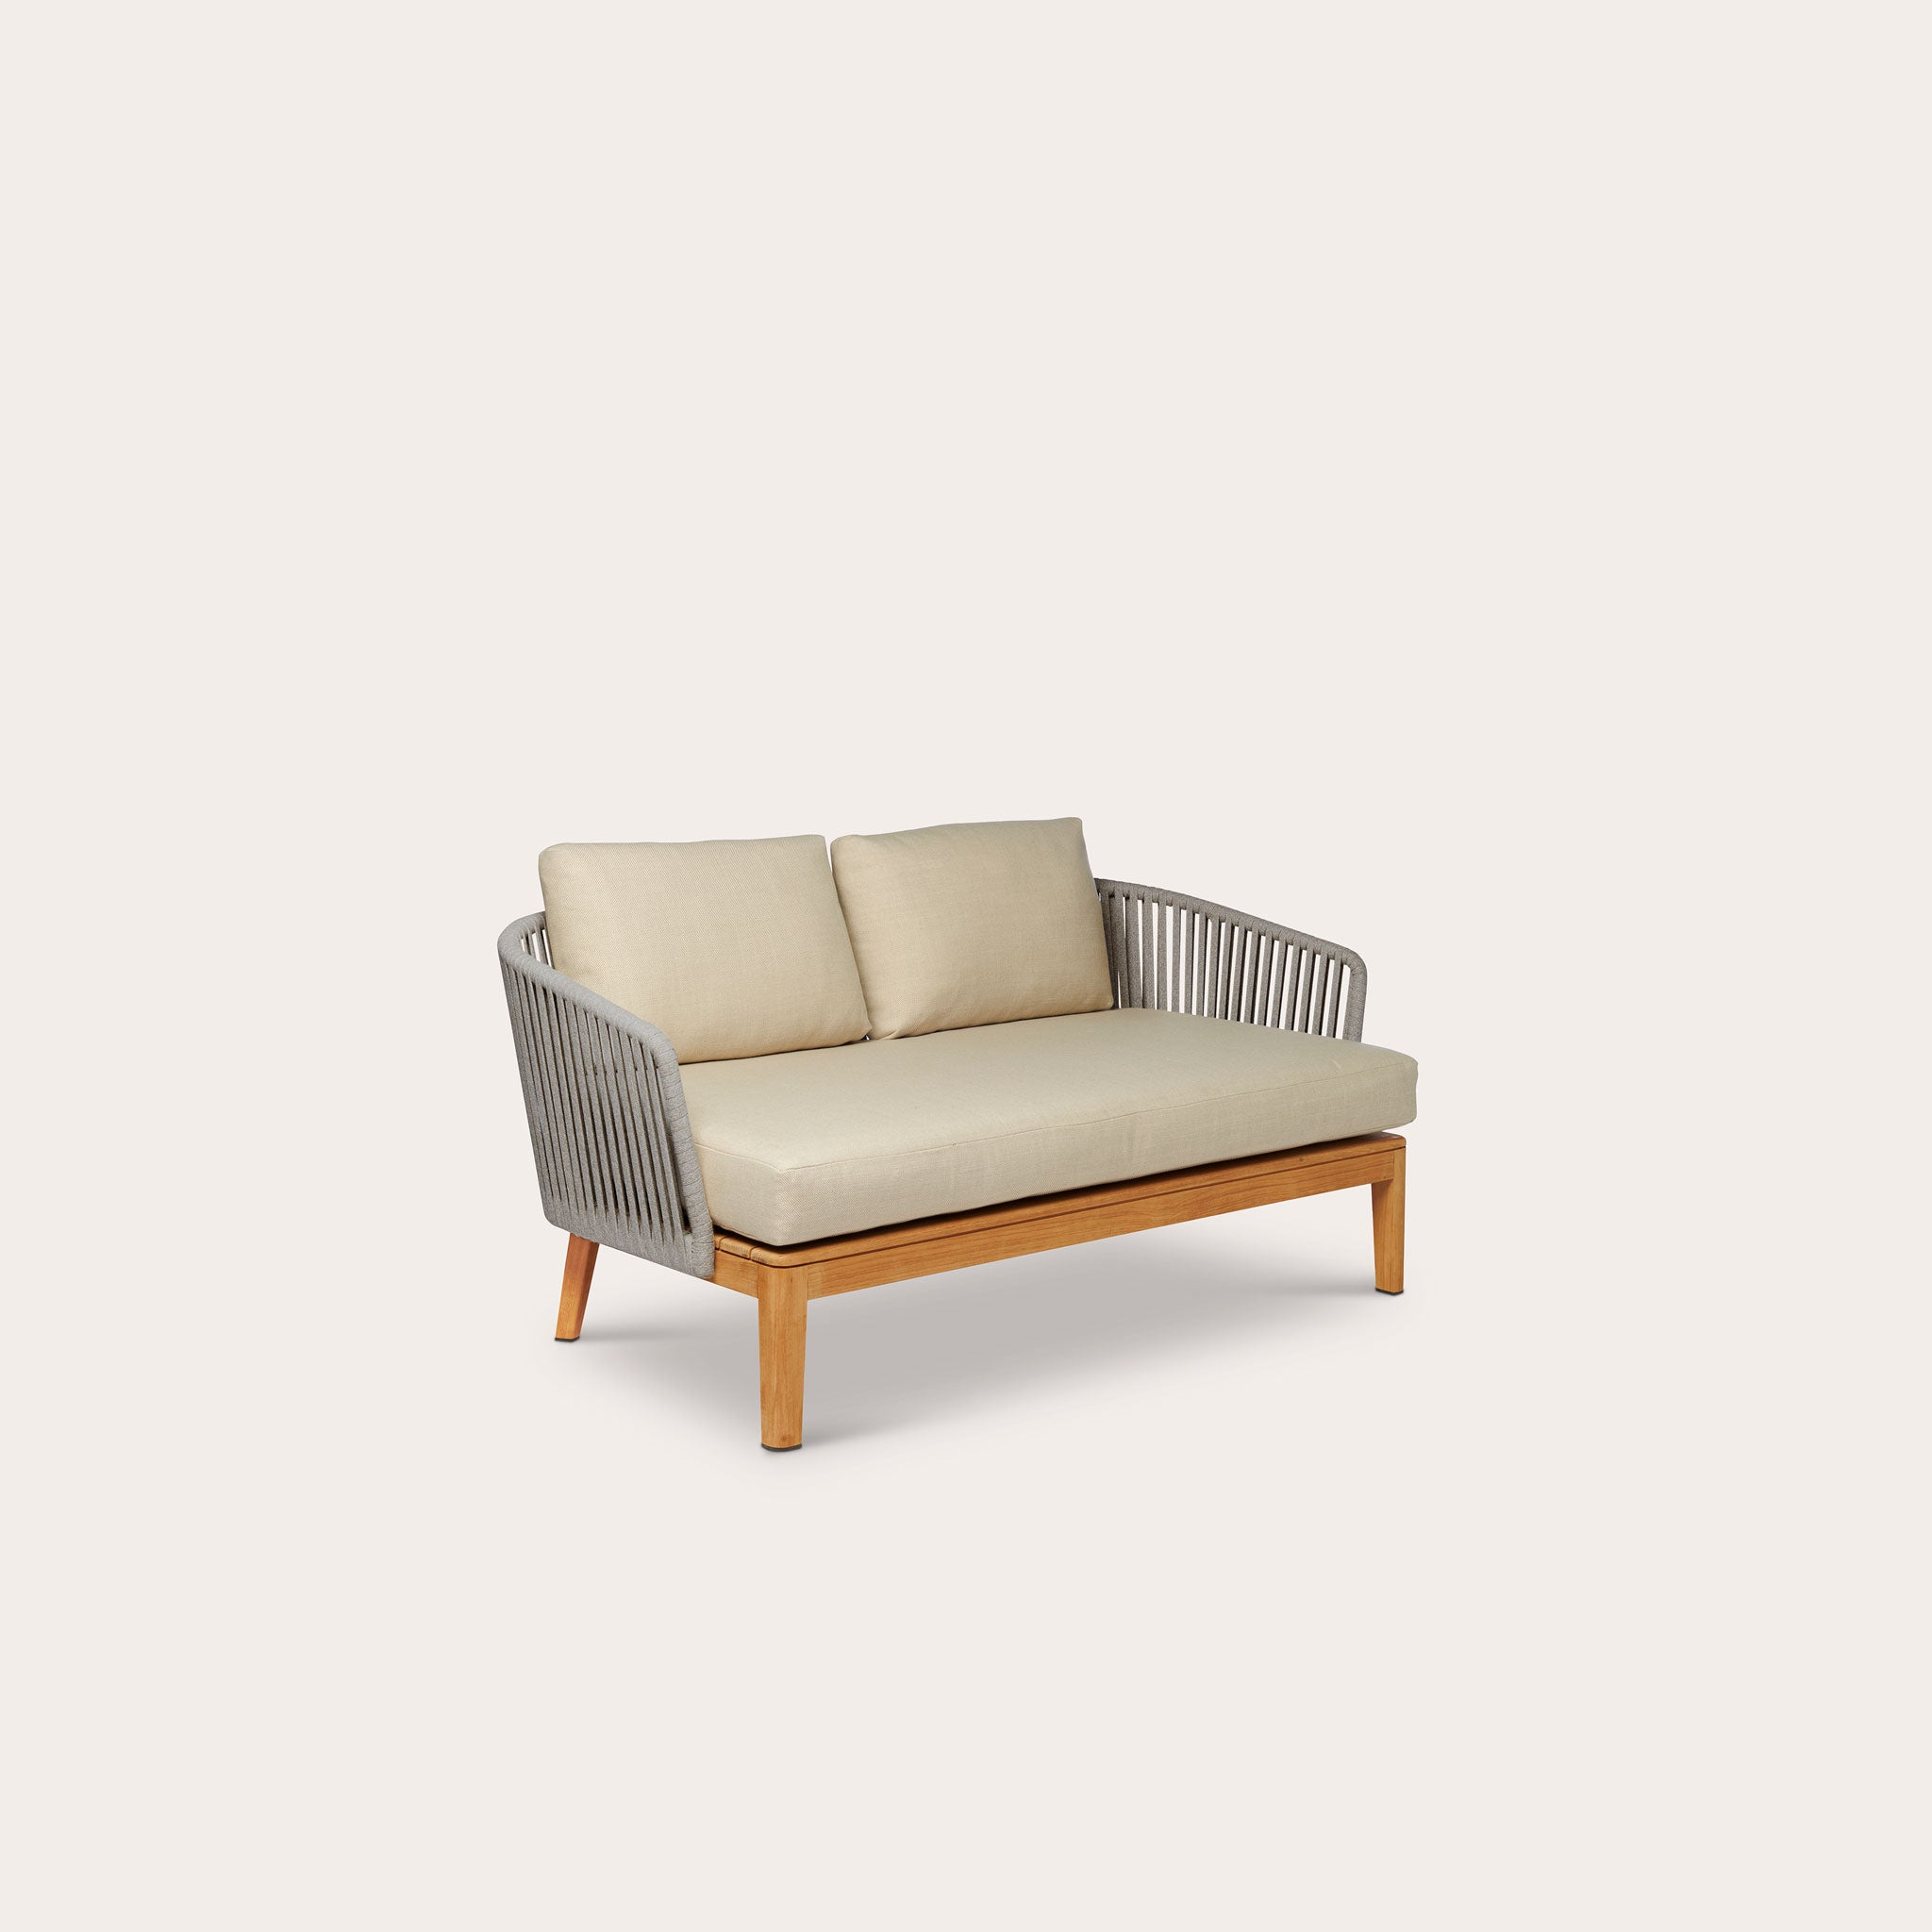 MOOD Sofa Outdoor Studio Segers Designer Furniture Sku: 007-200-11515